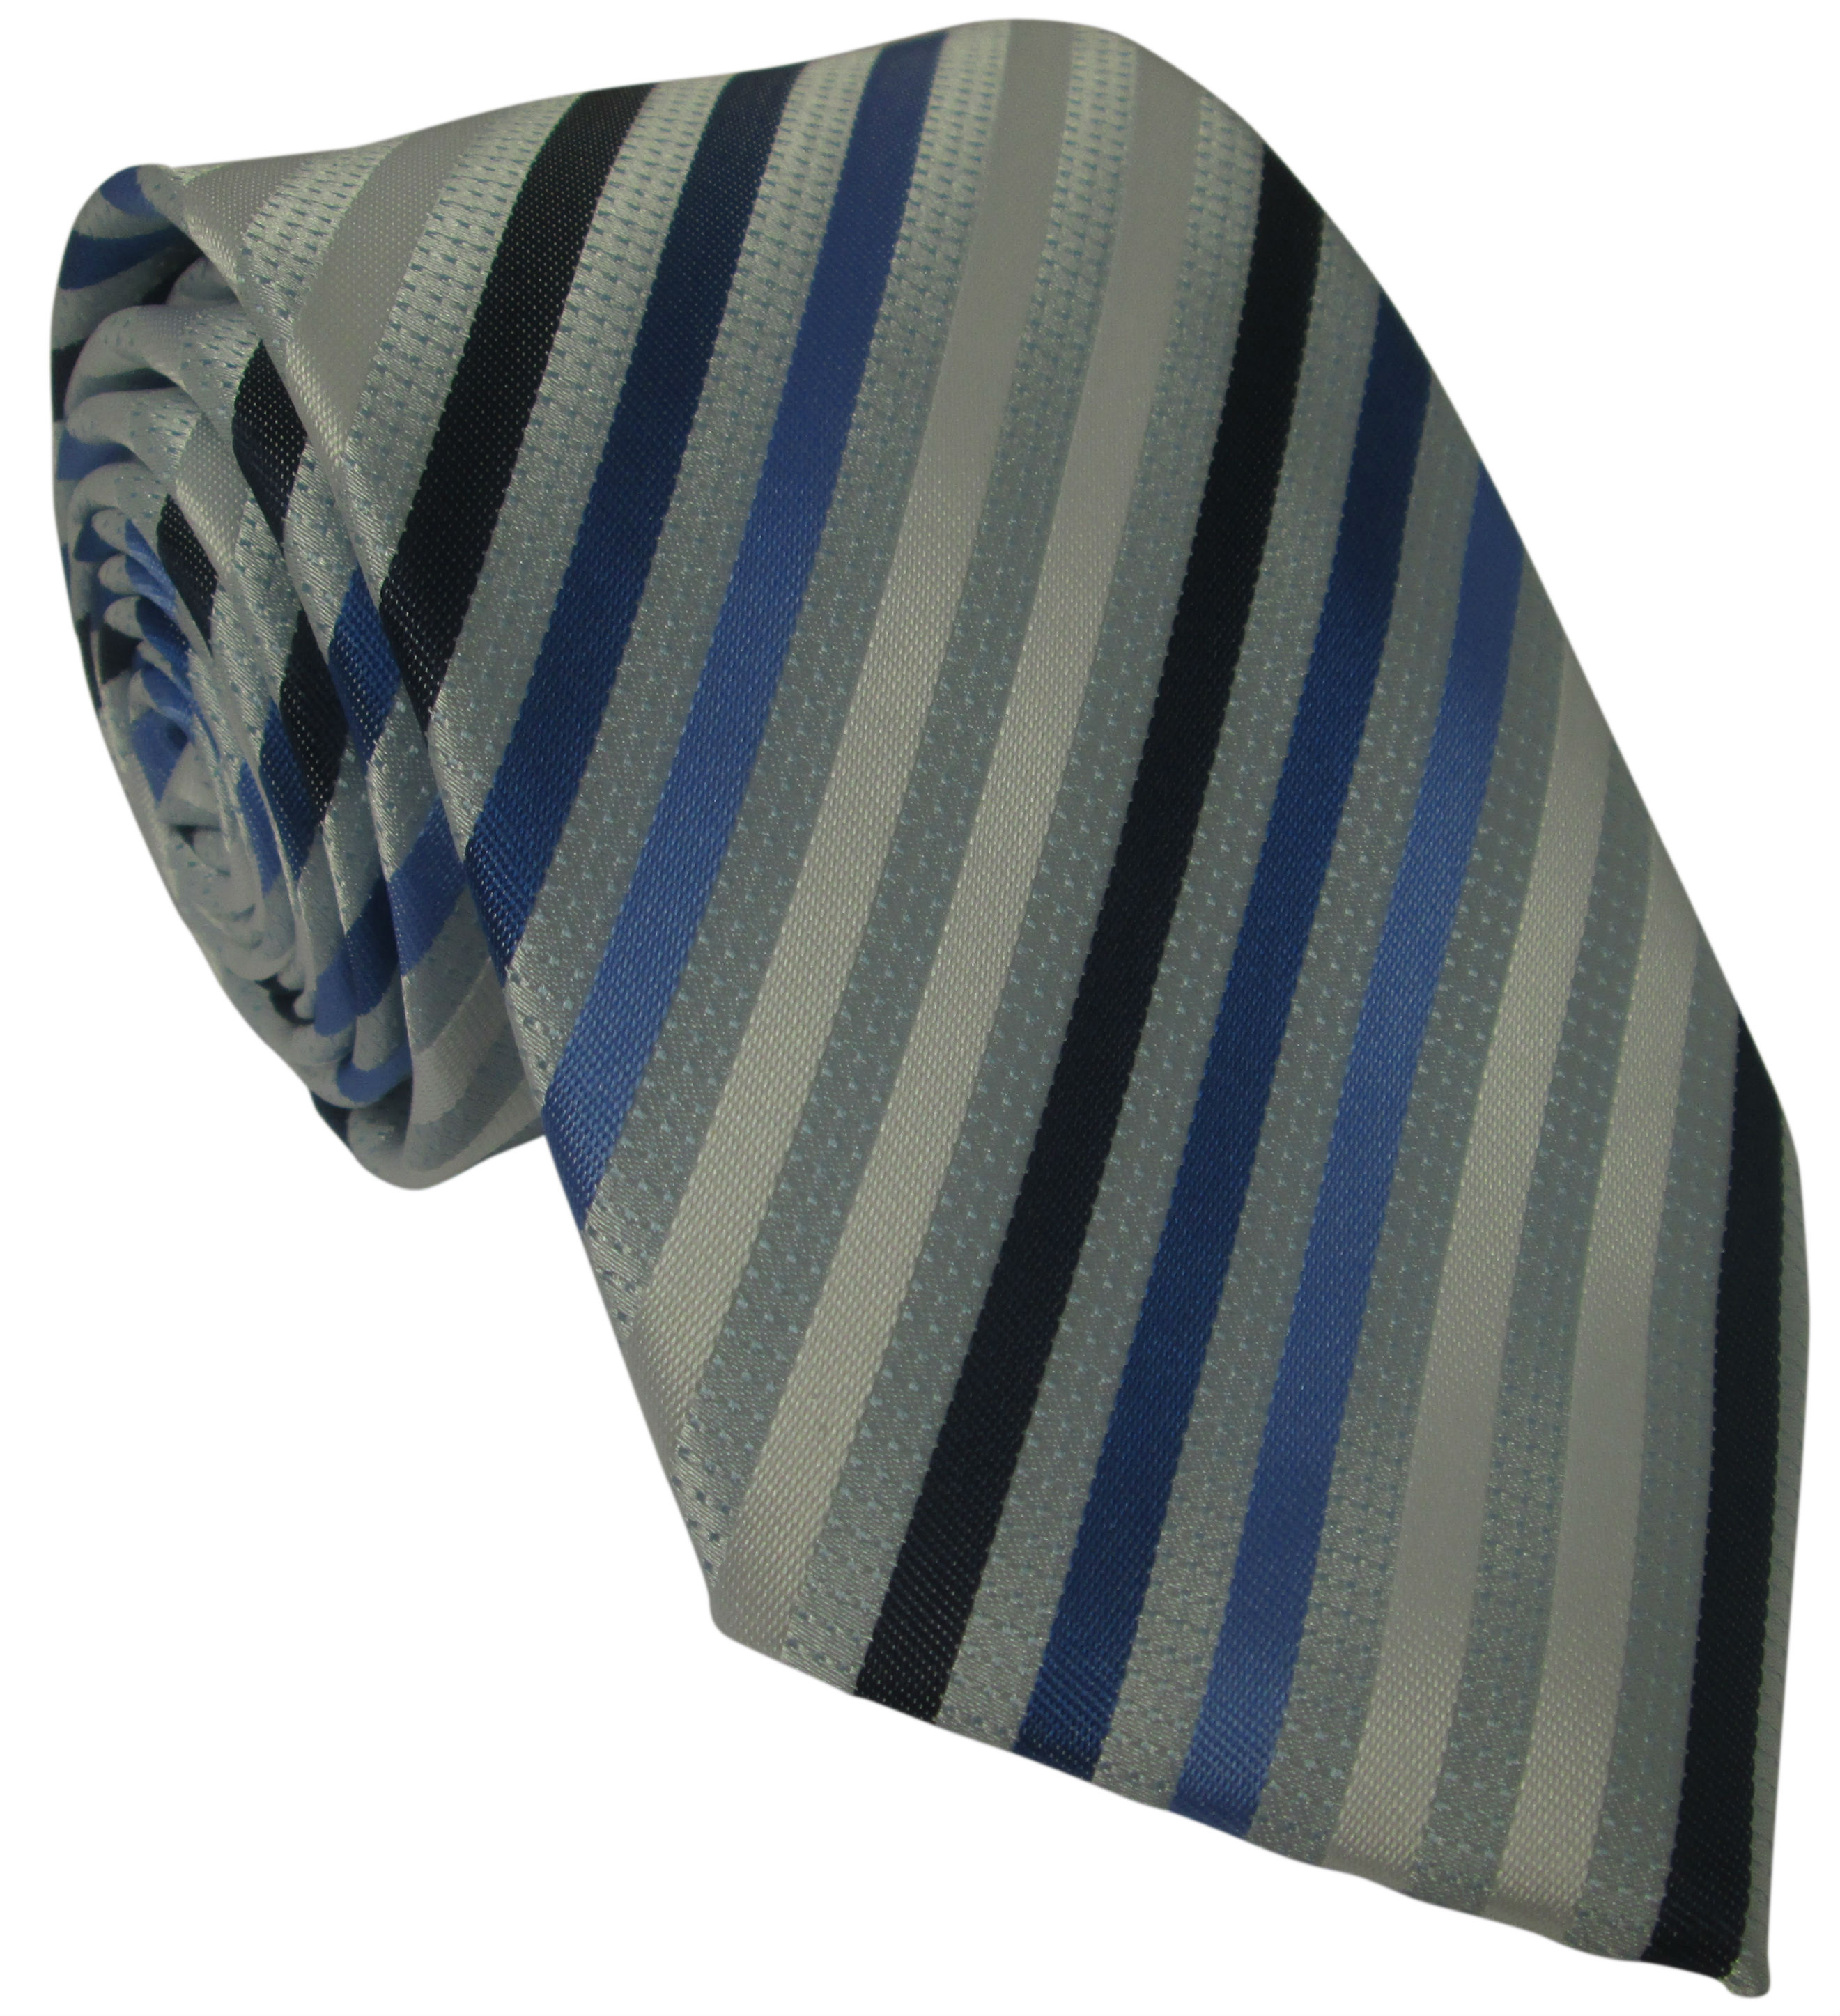 Silver Silk Tie with Blue and White Stripes